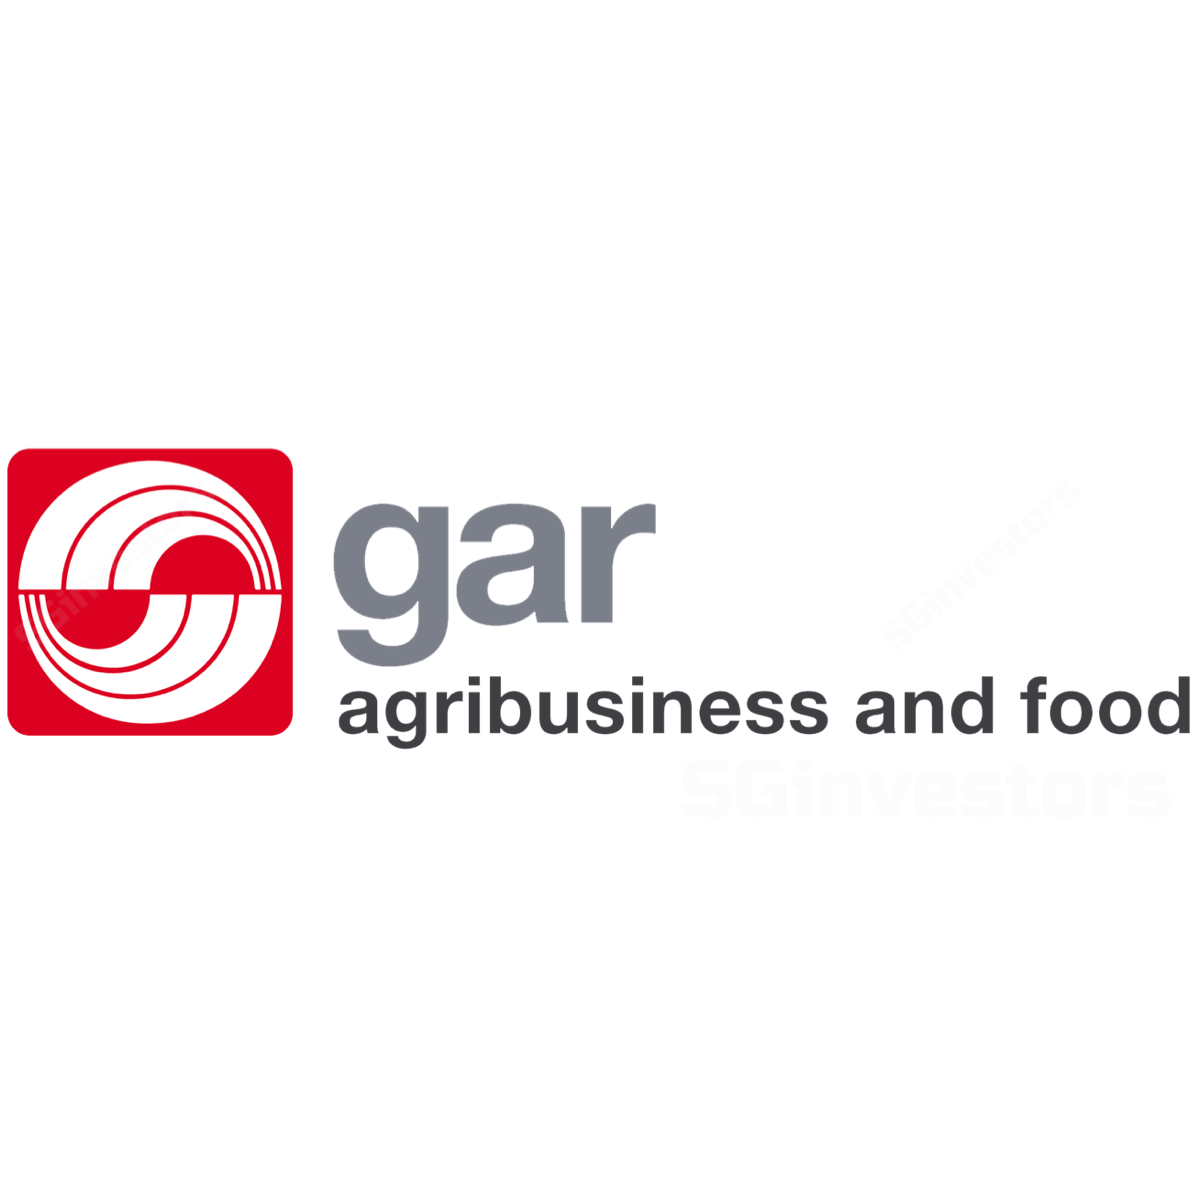 Golden Agri-Resources - CIMB Research 2017-05-15: Not An Exciting 1Q Despite Stronger Output